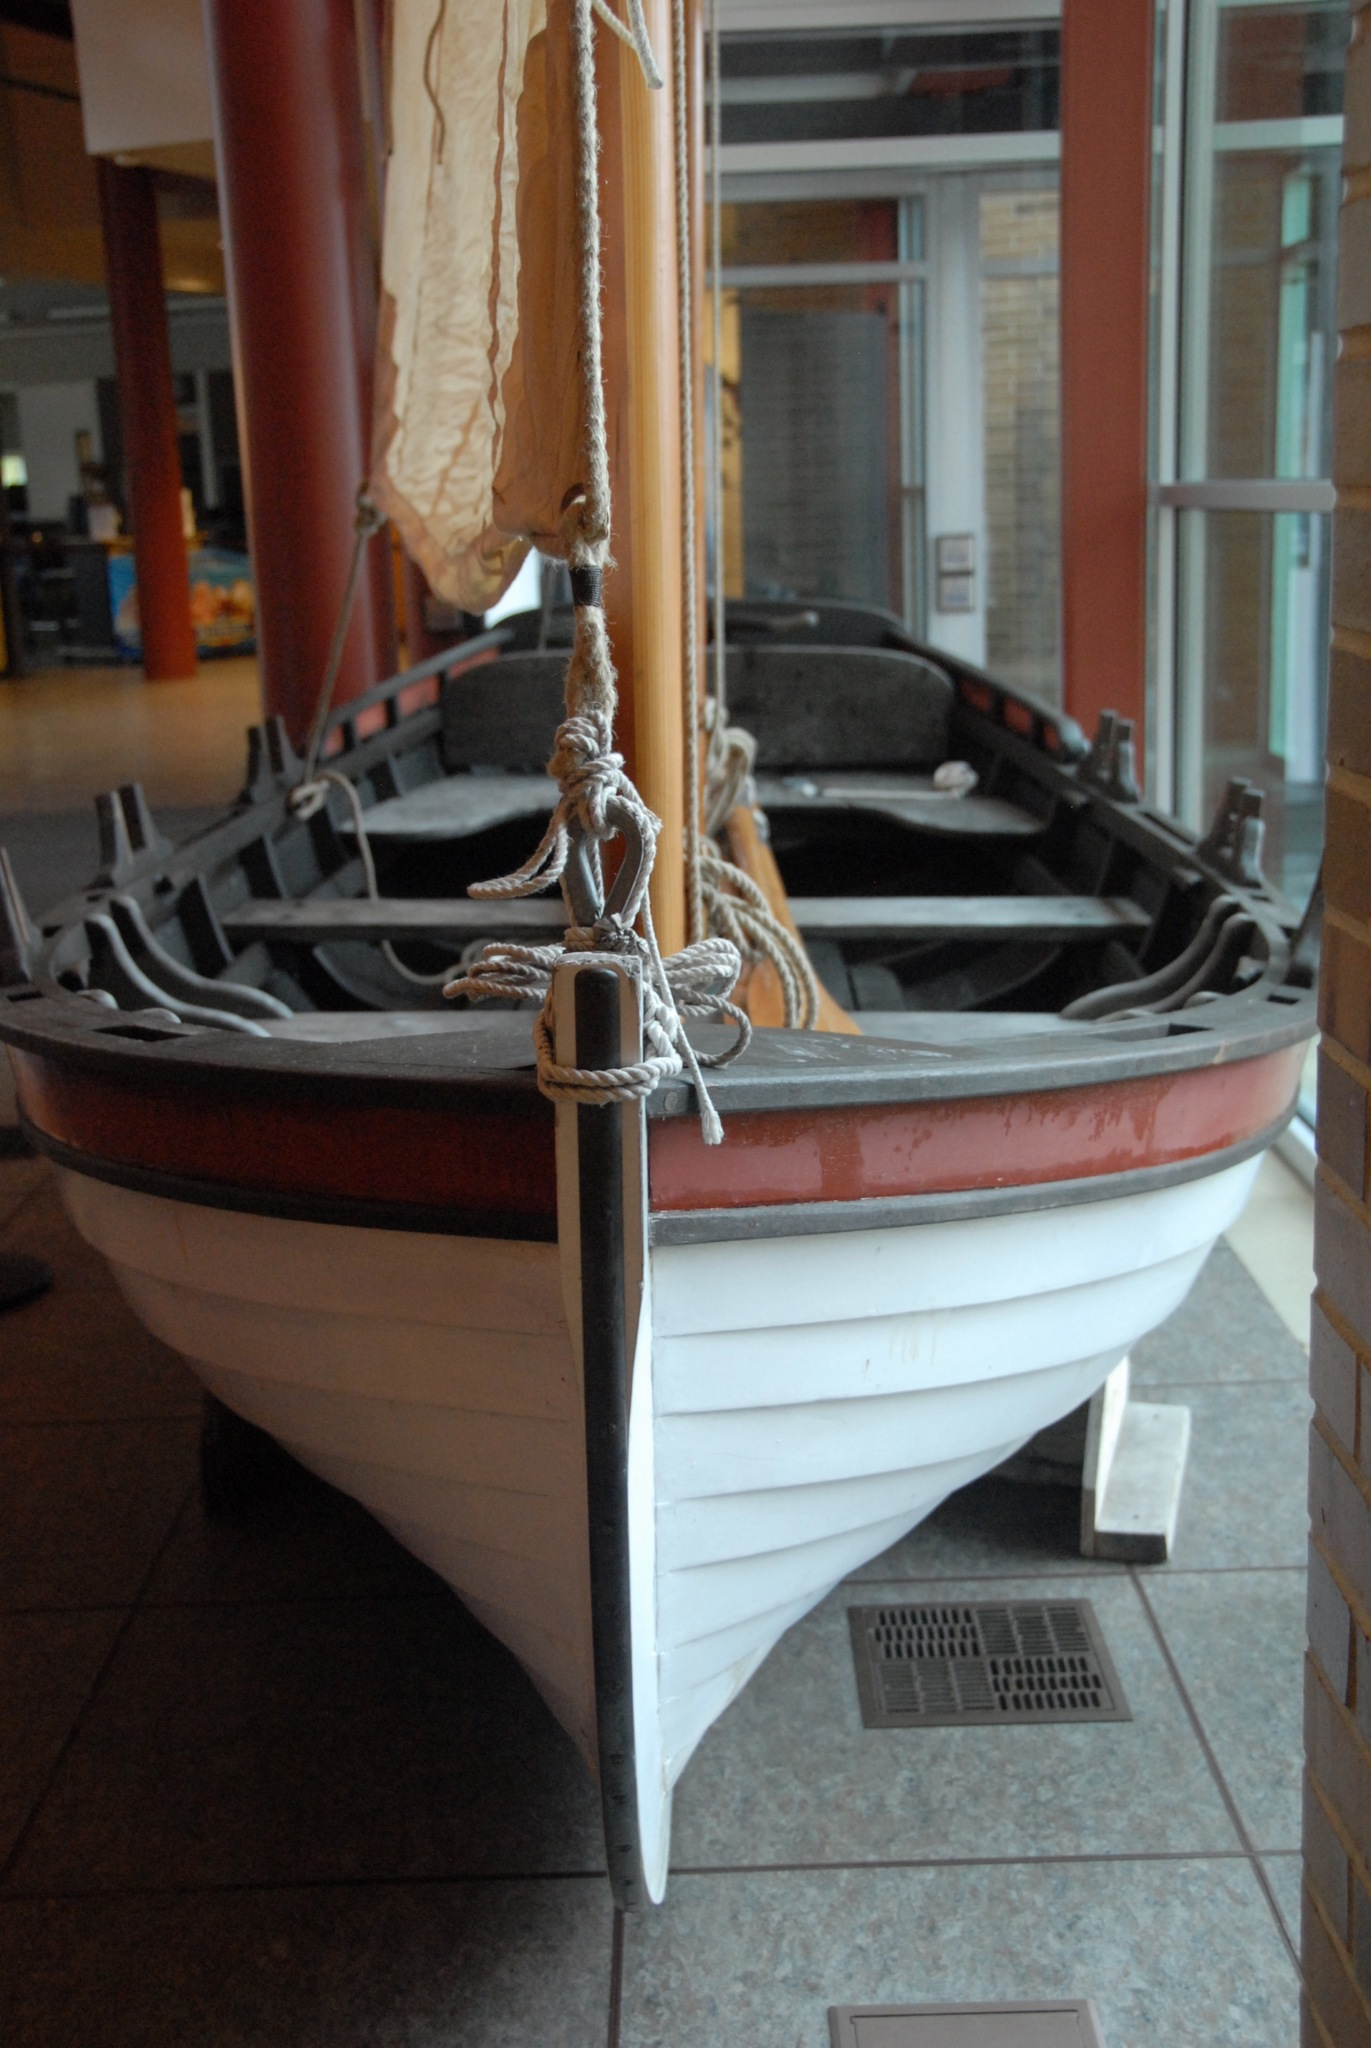 boat on display at Shipwreck exhibit